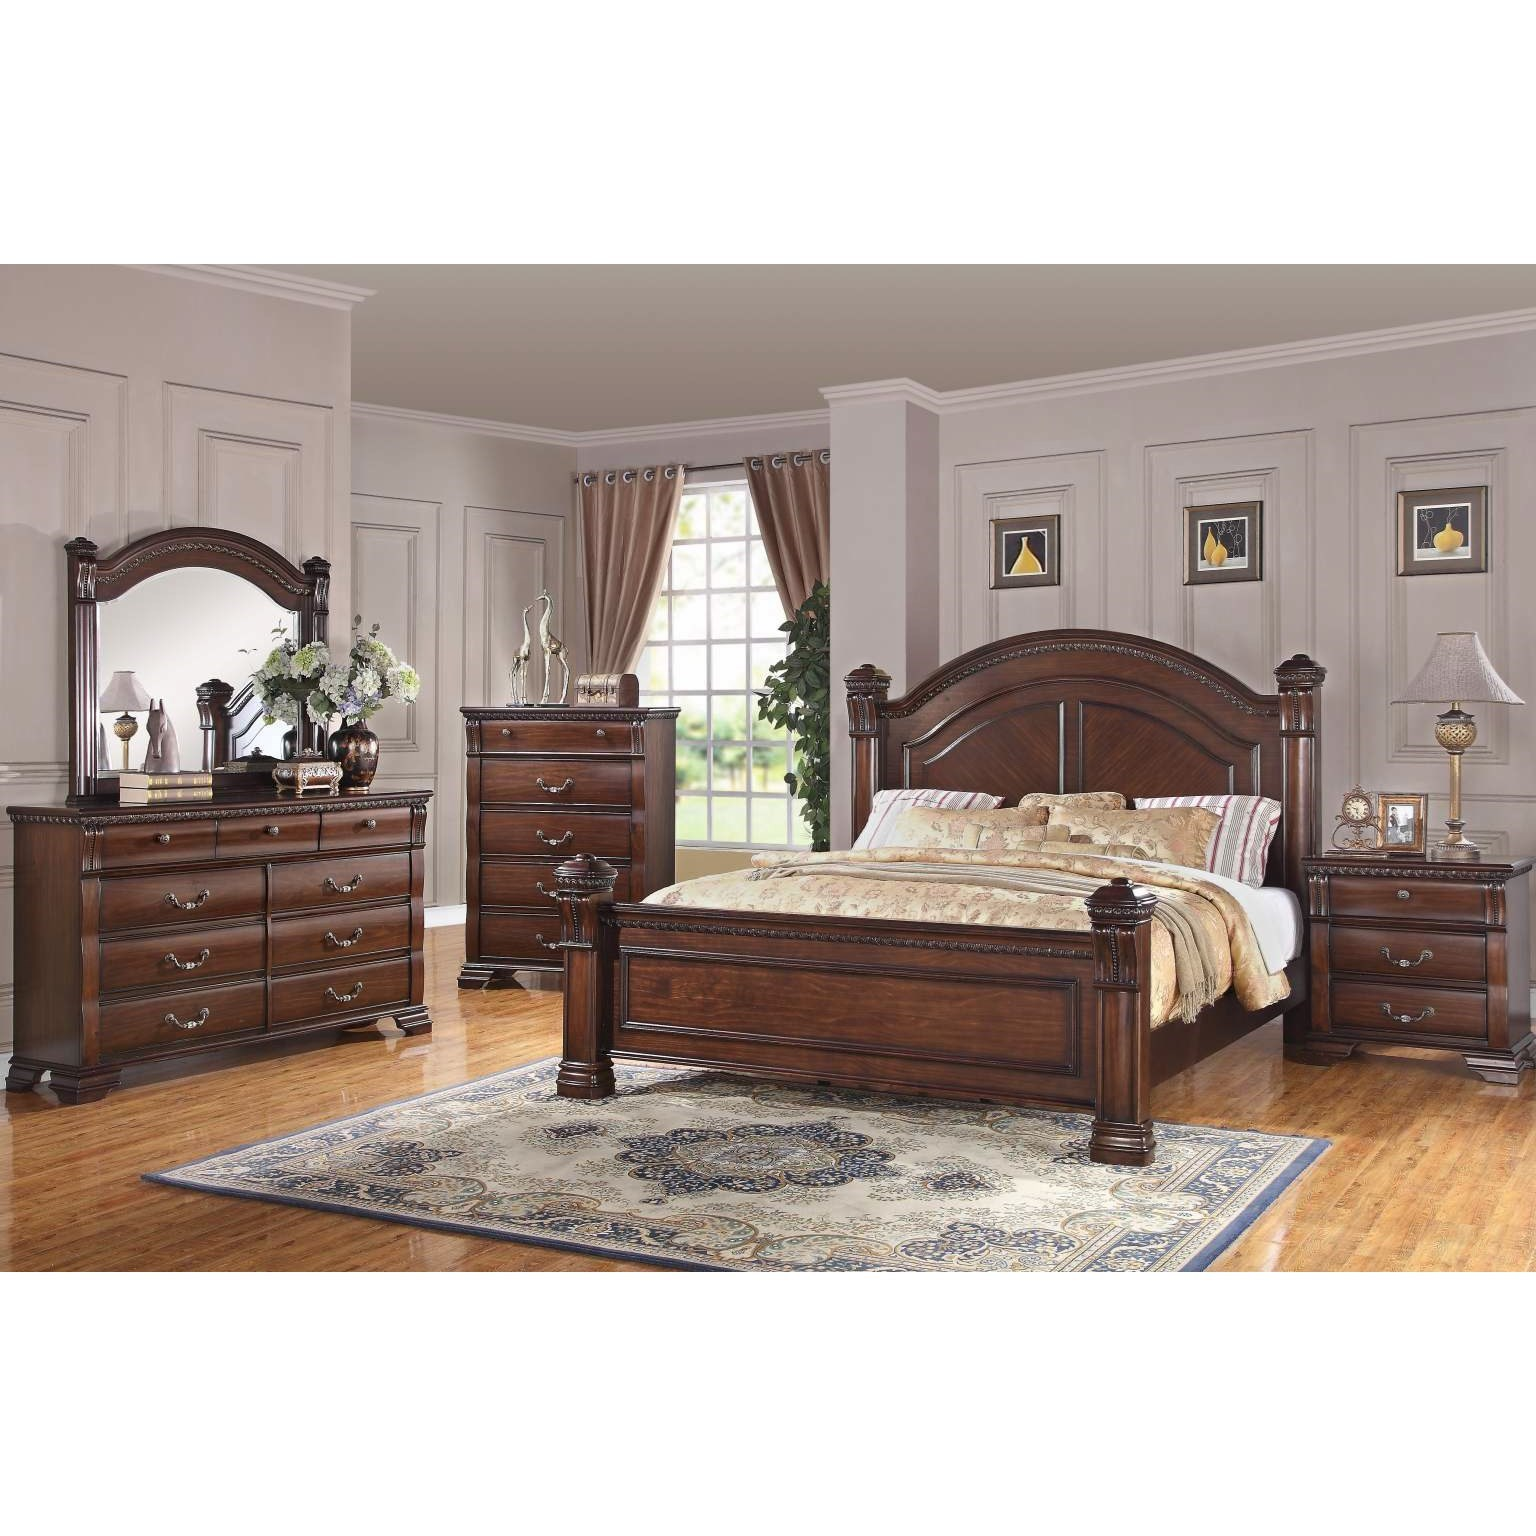 Bernards Isabella King Bedroom Group